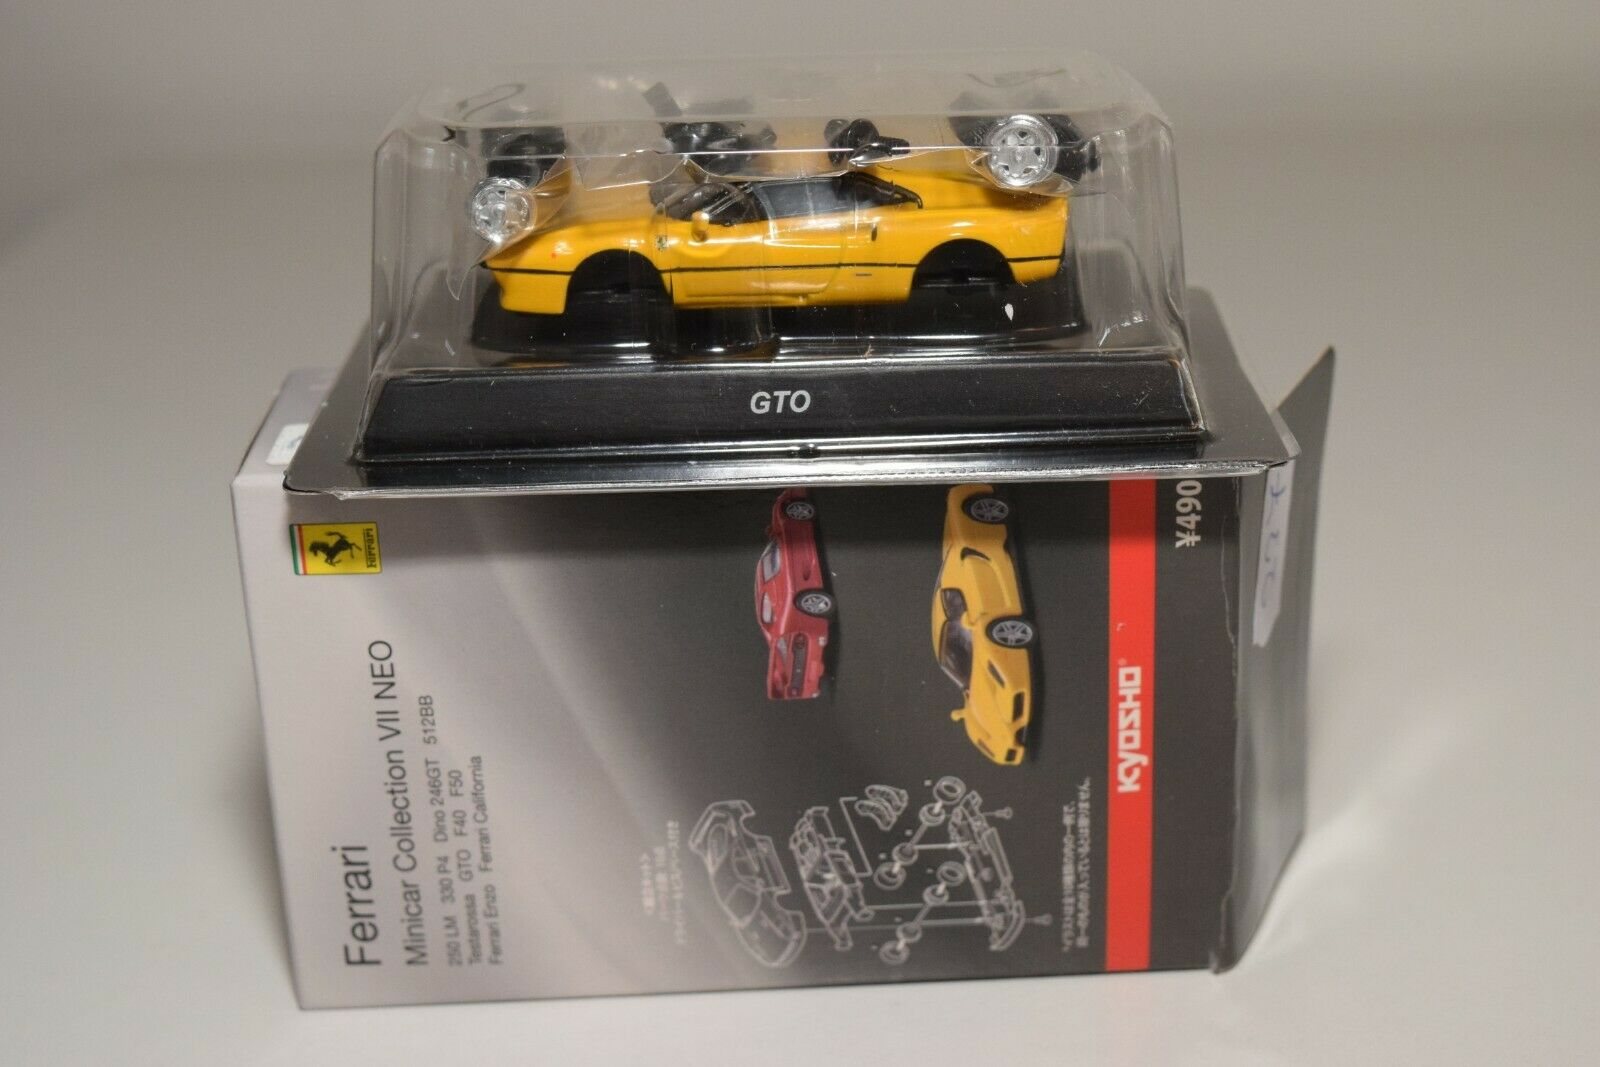 V 1 64 237 KYOSHO COLLECTION 7 NEO FERRARI GTO YELLOW MINT BOXED RARE SELTEN